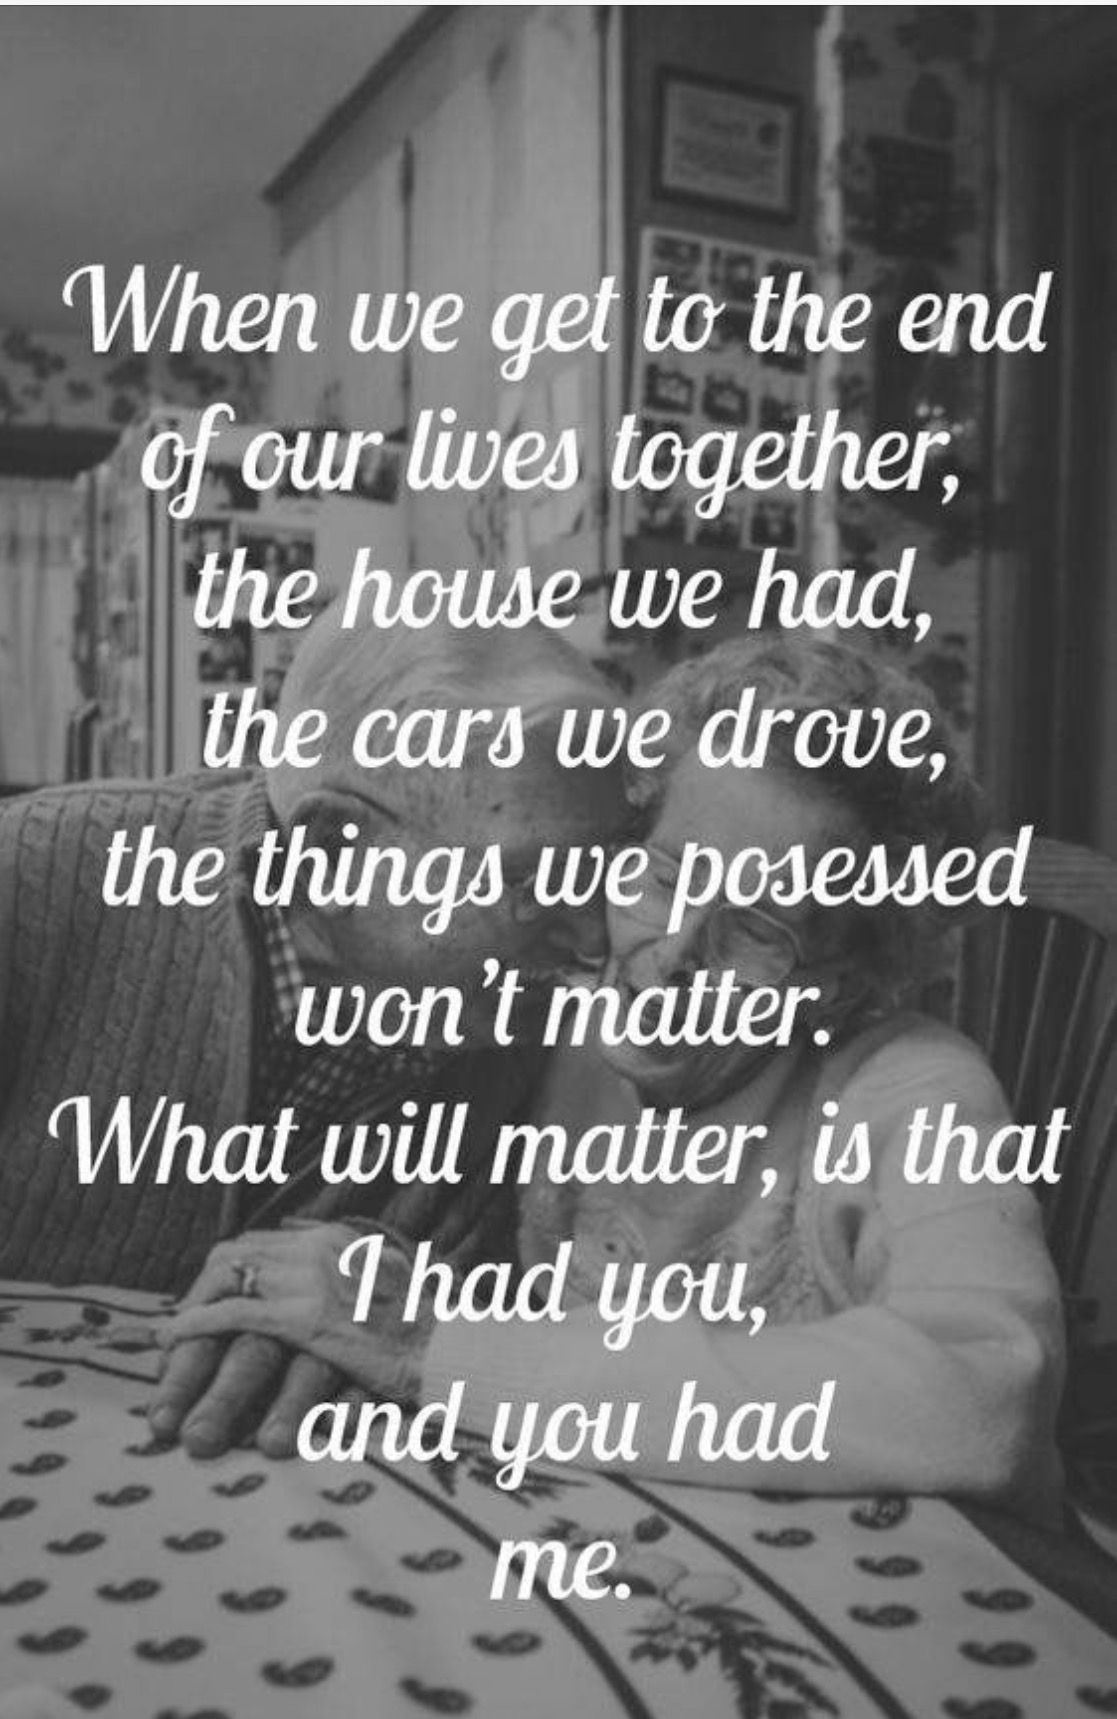 Quotes For End Of Life Pinnancy Brothers Messer On Old Age  Pinterest  Wisdom